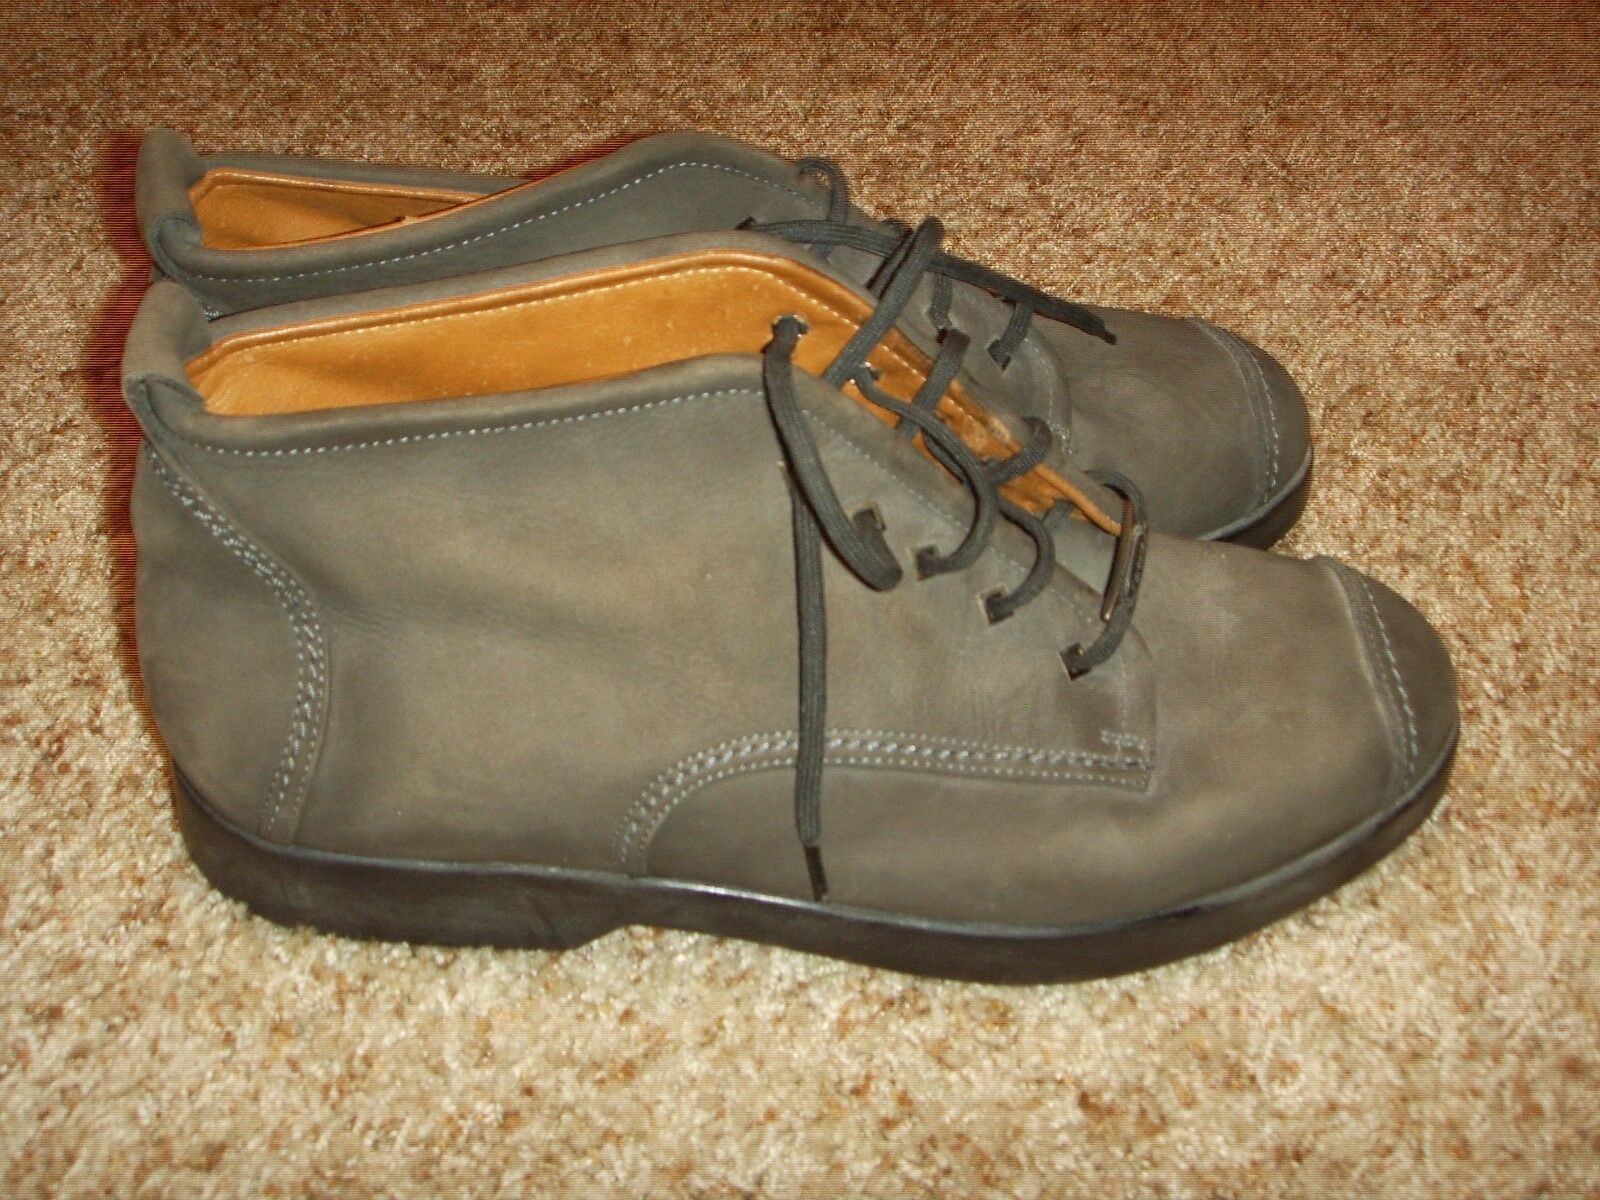 Cadillac By Foreste Suede Captoe Stivali Made In Italy Uomo Size 44